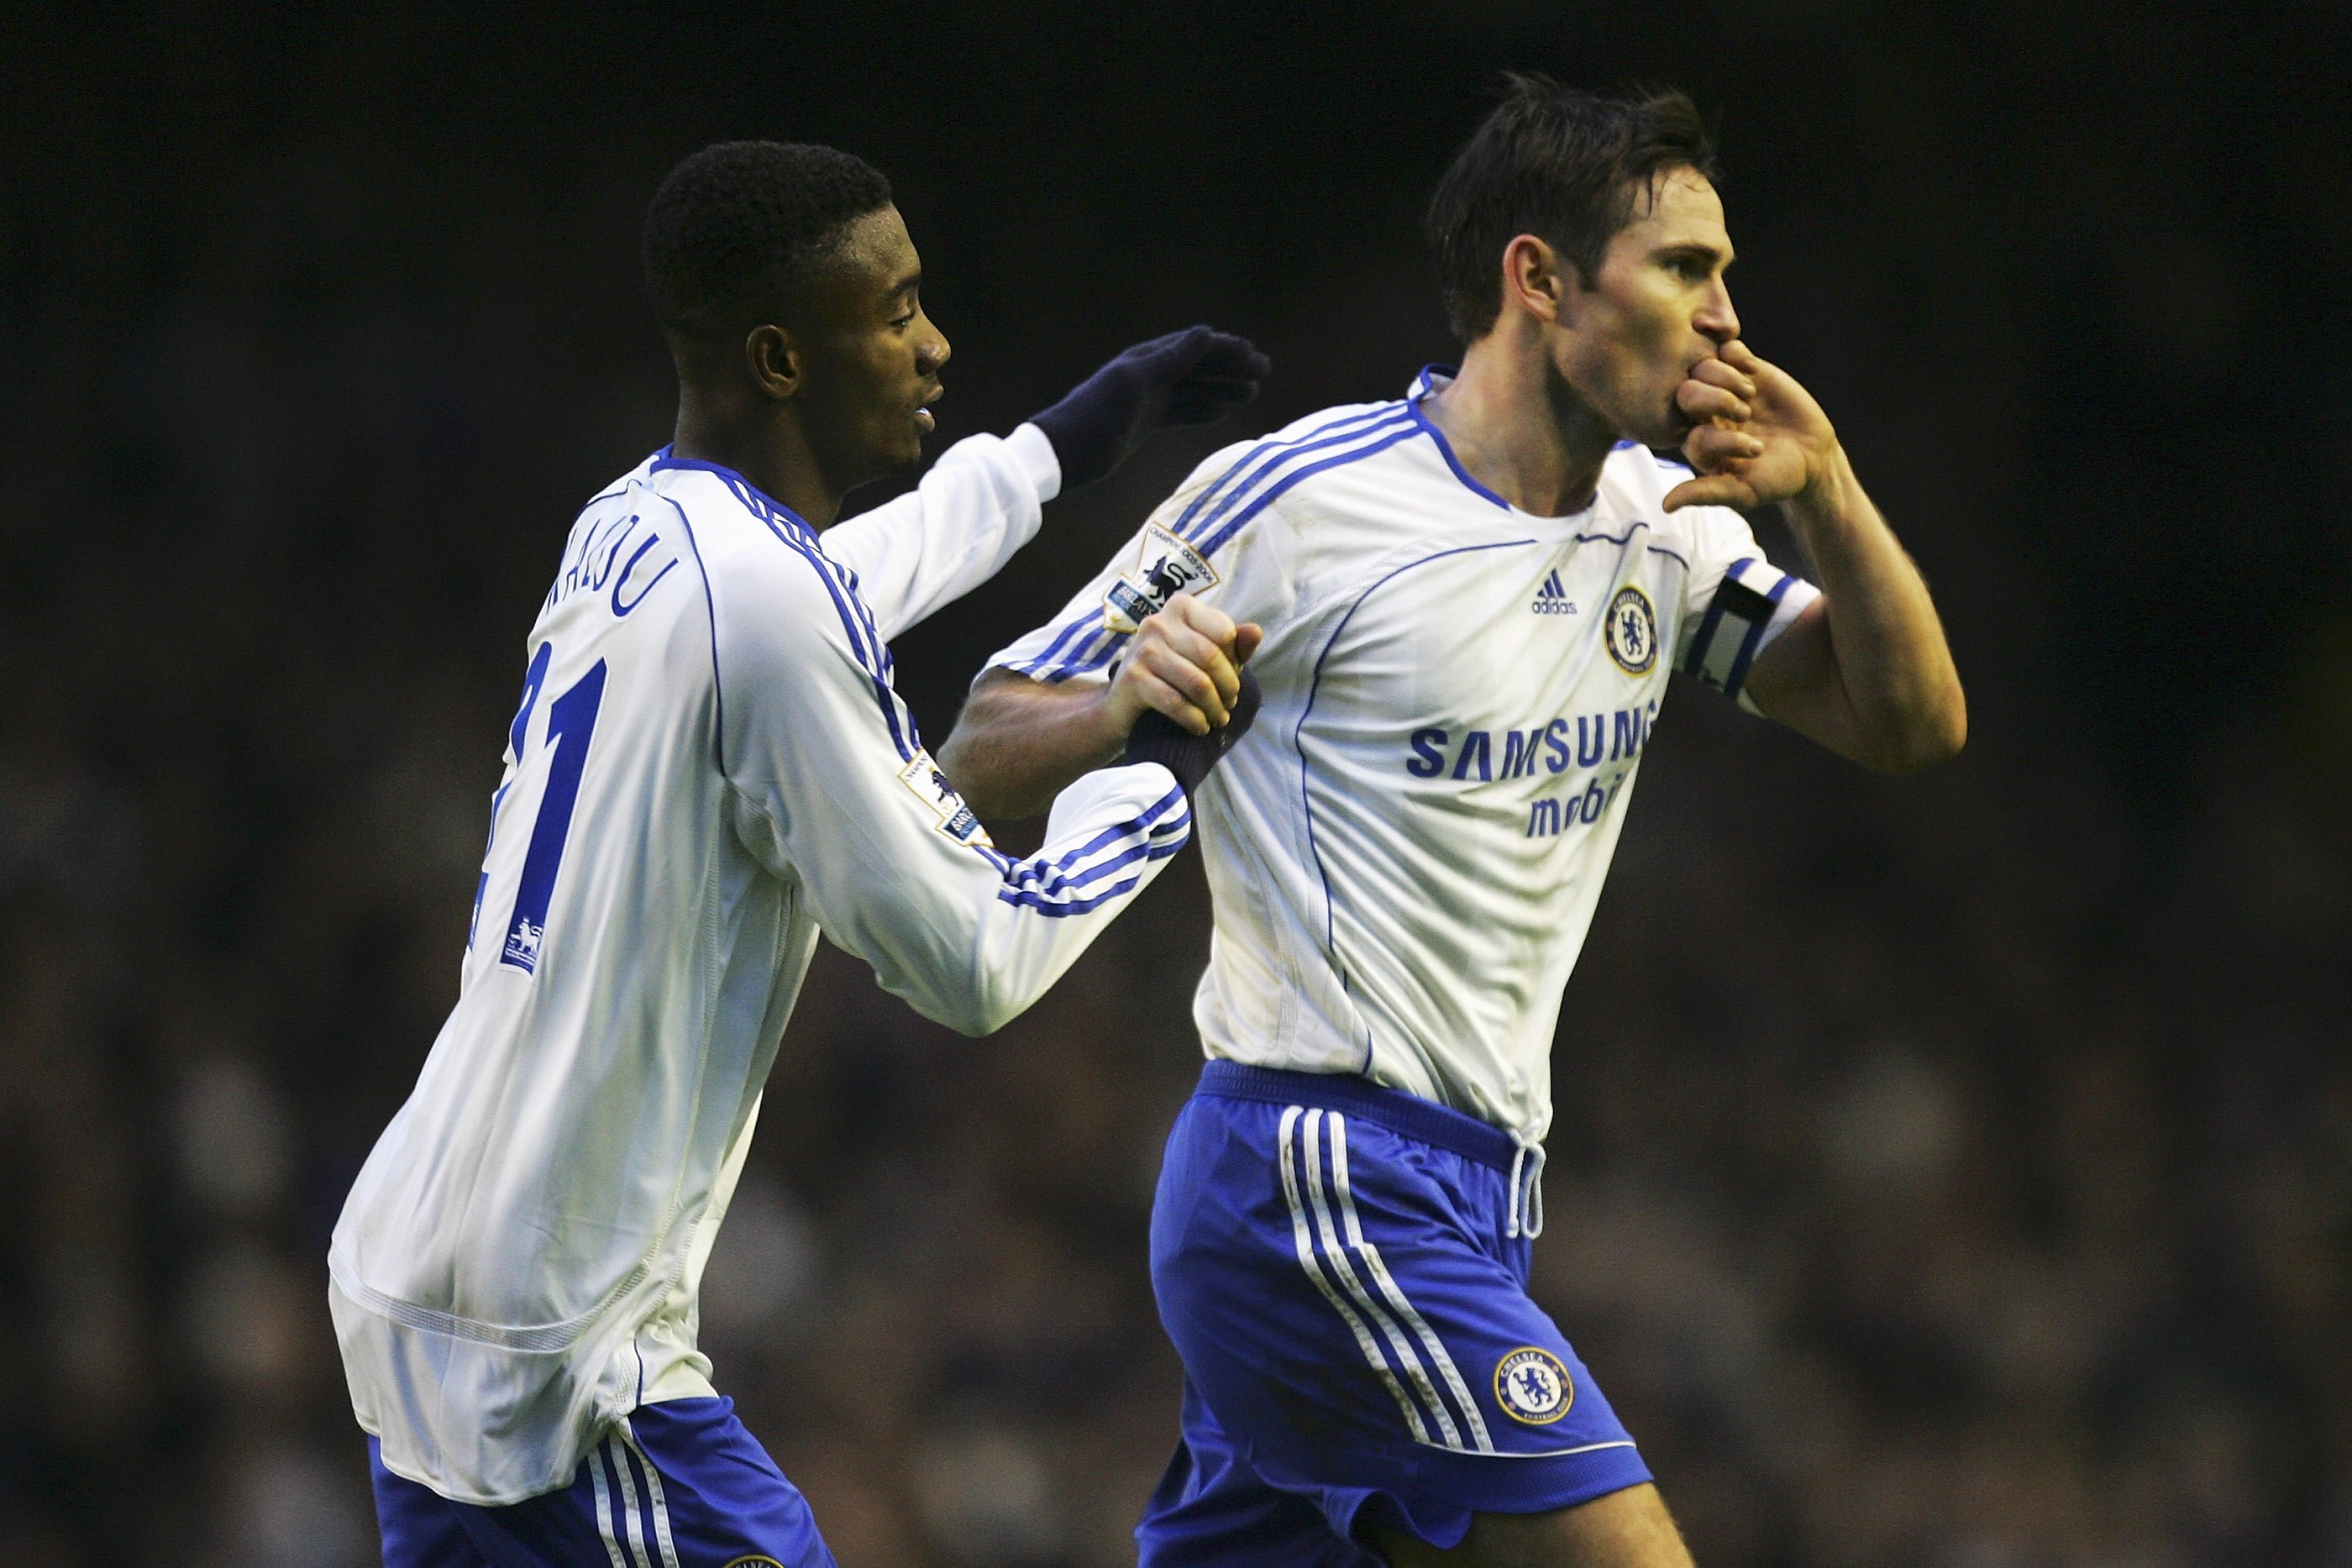 Lampard's goal was an absolute peach